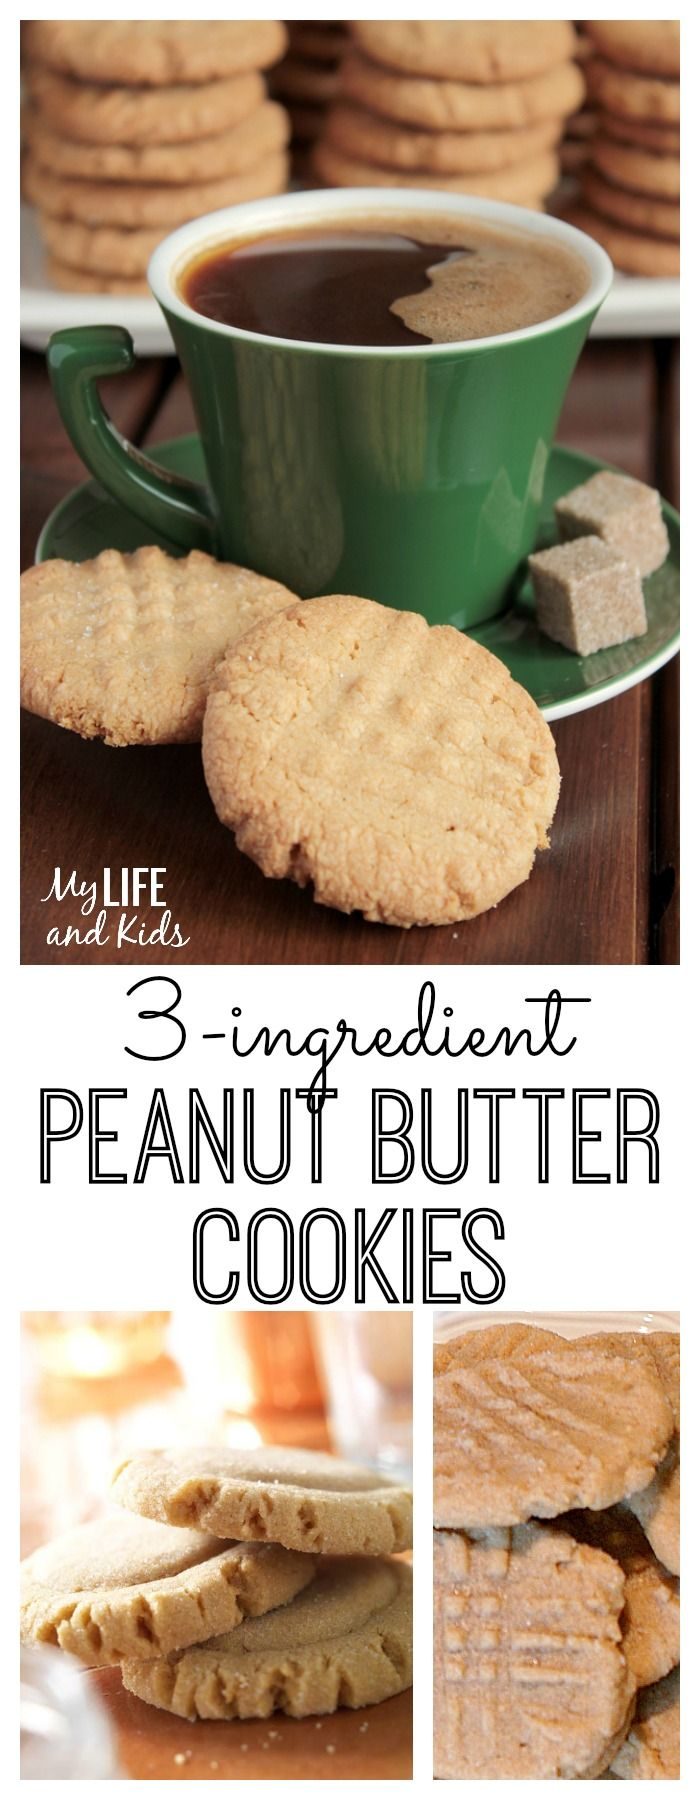 This simple peanut butter cookie recipe is only 3 ingredients, no flour! It's easy and delicious and a great recipe to whip up with your kids! Gluten free, dairy free dessert recipe.